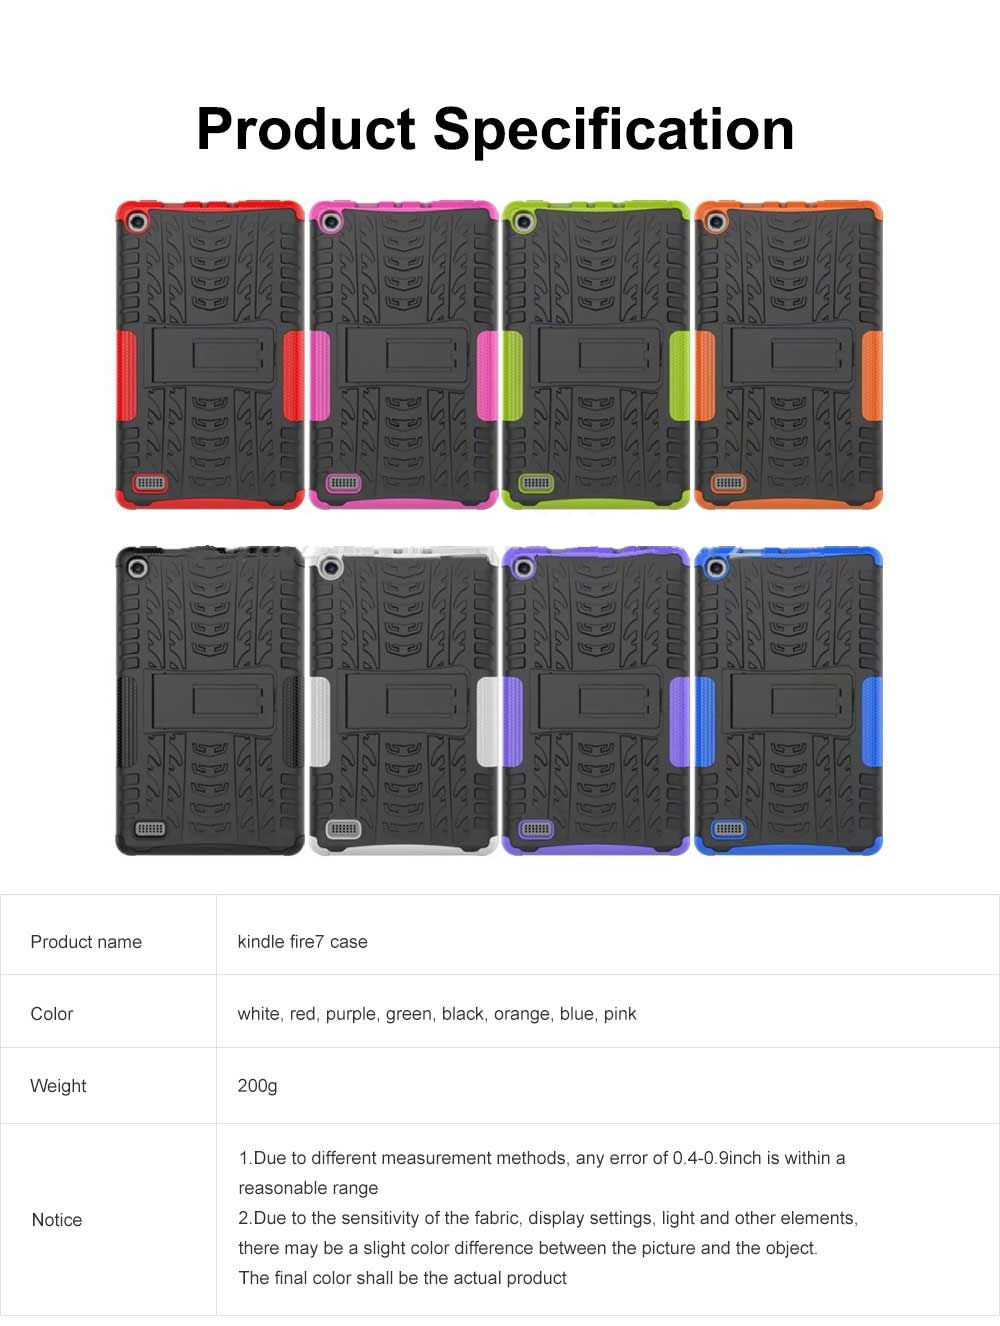 Full Protection Case for Kindle fire7 2017 Anti-slip Shockproof Impact Resistance Protective Case Cover with Kickstand 6